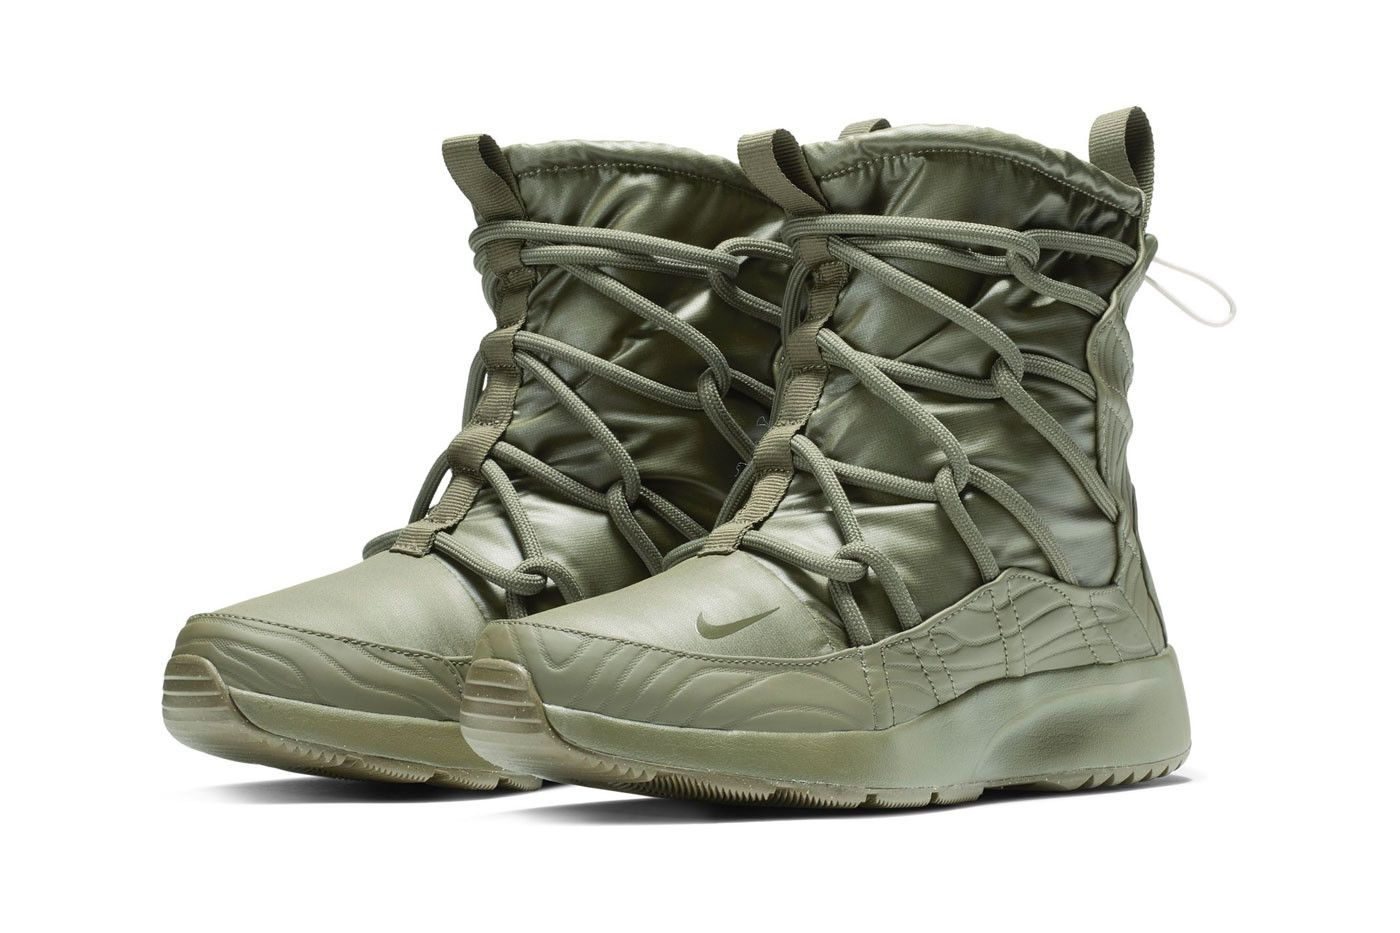 947f69c0 Nike Tanjun High Rise Boot New Colorways Fall 2018 olive maroon black white  release date info price sneakers winter